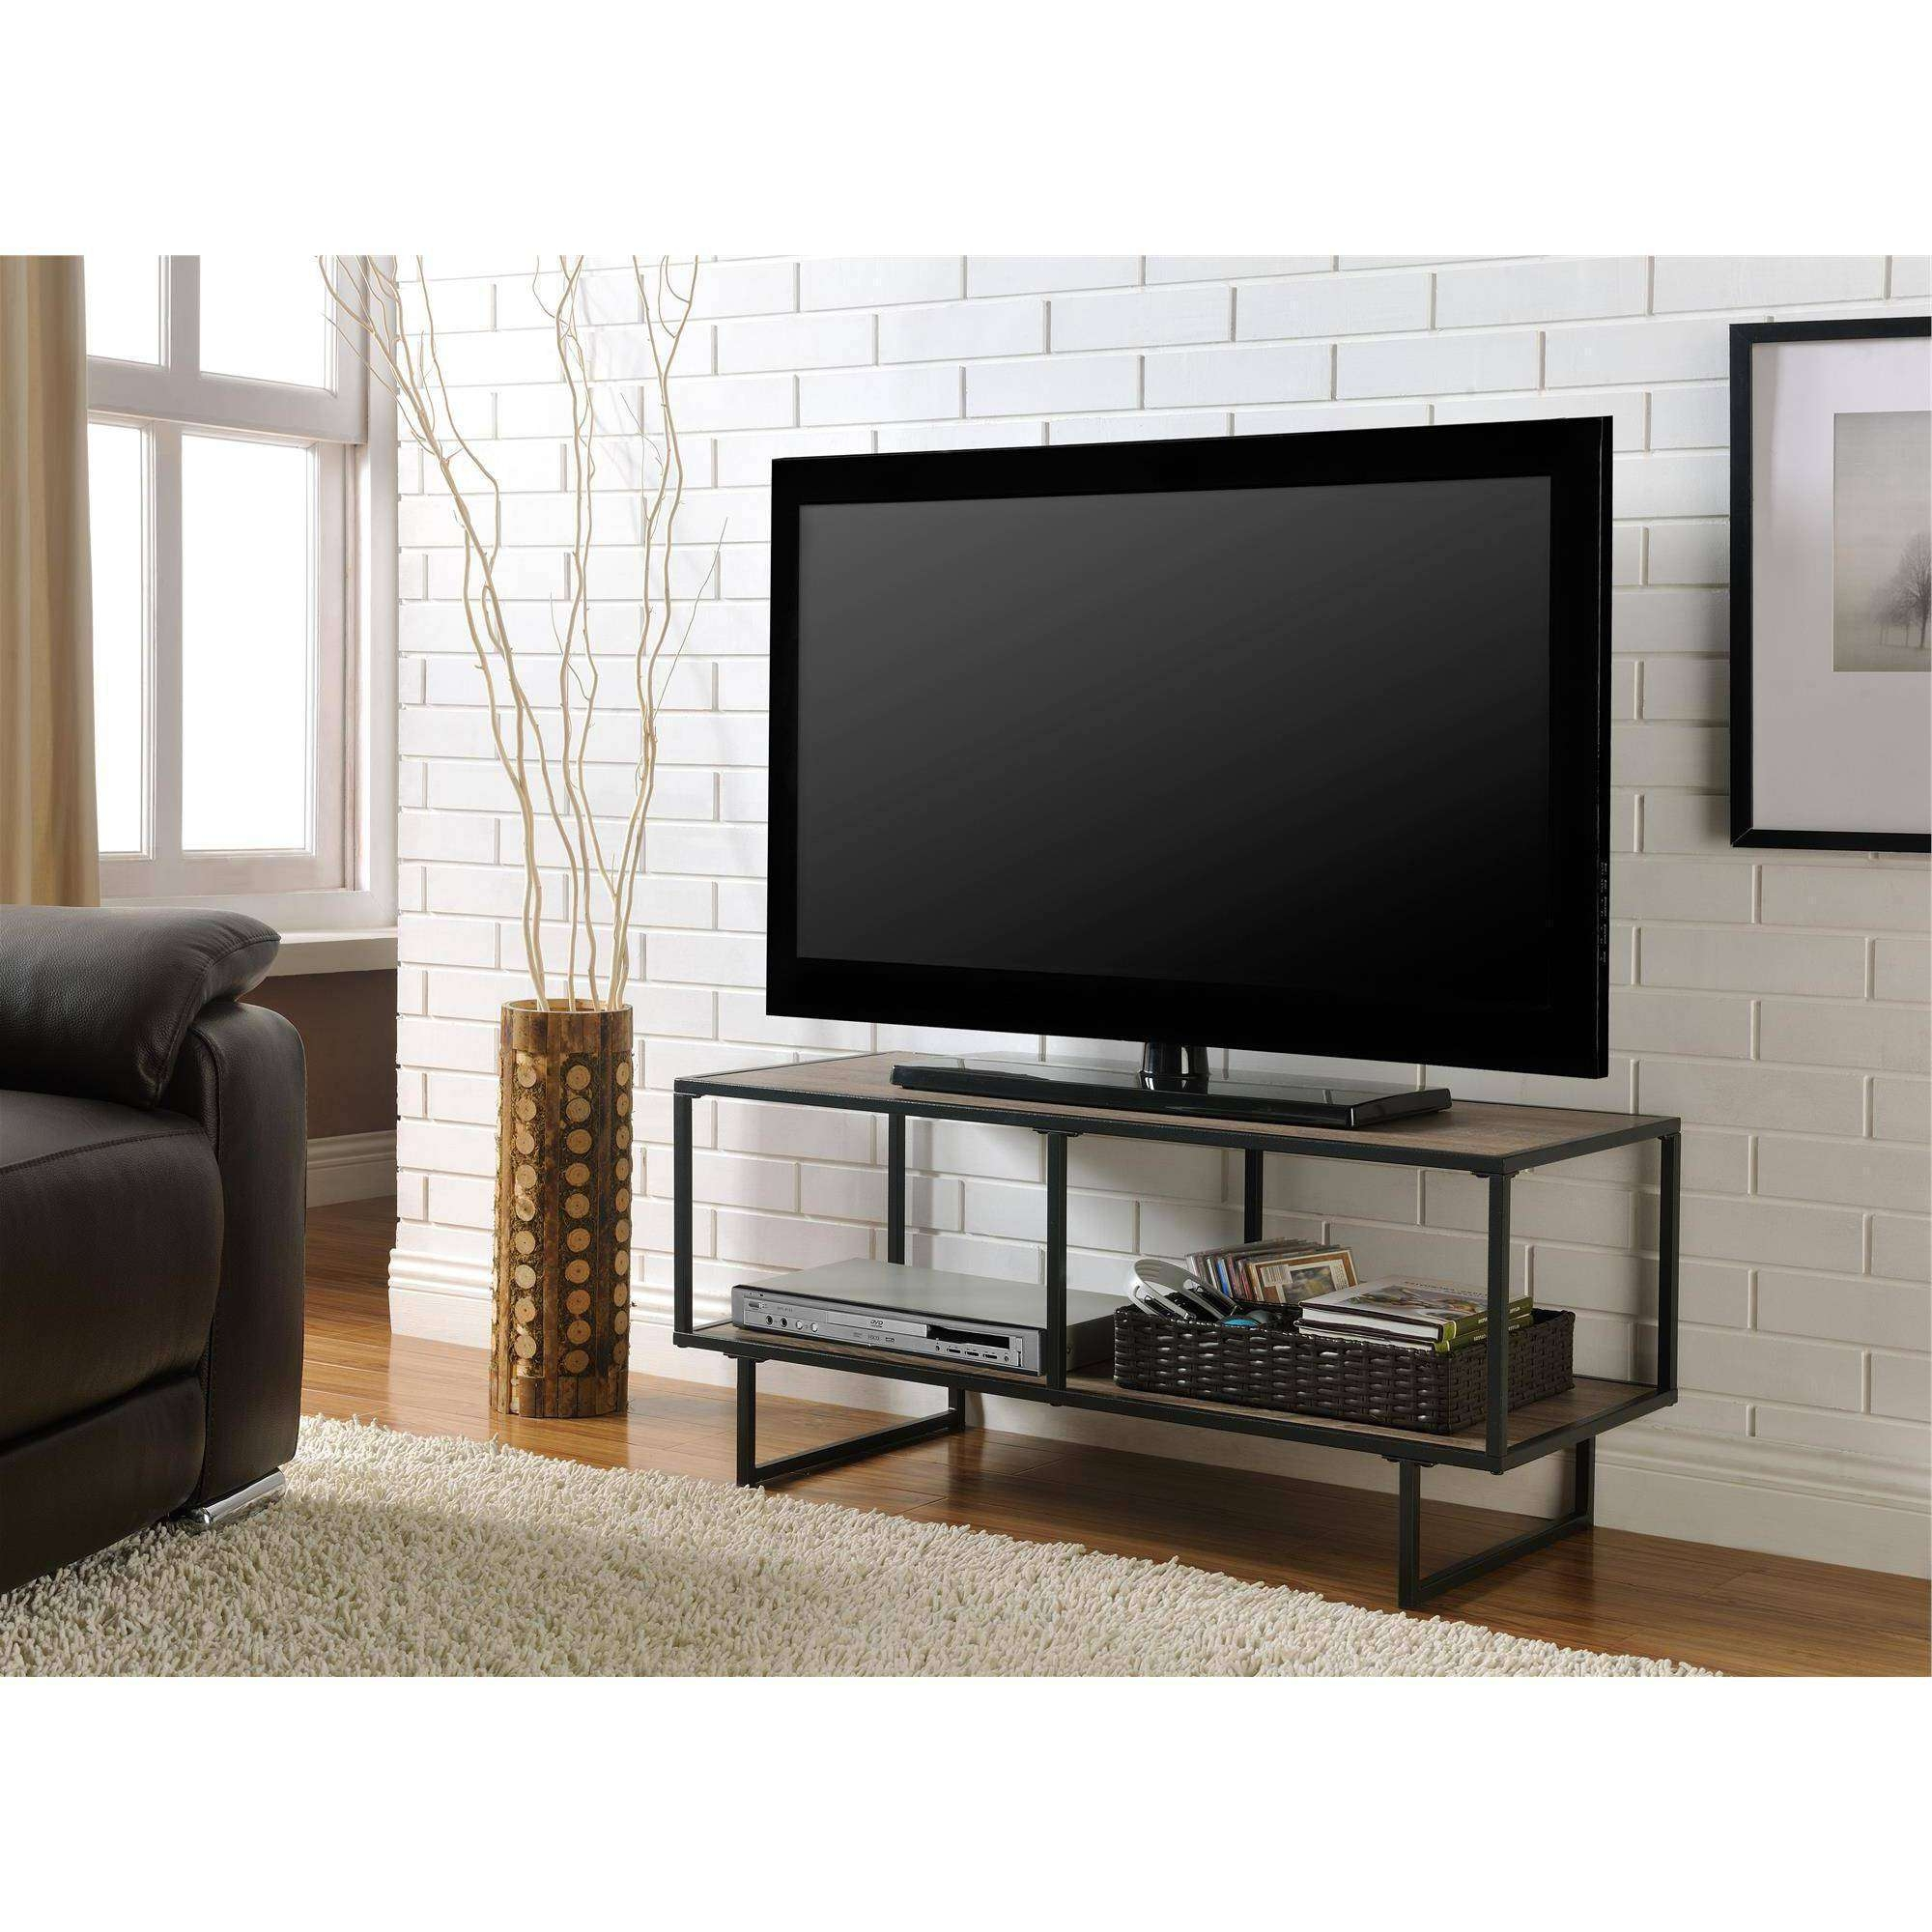 Altra Furniture Emmett 1 Shelf Tv Stand Coffee Table In Sonoma Oak Within Latest Tv Unit And Coffee Table Sets (View 2 of 20)